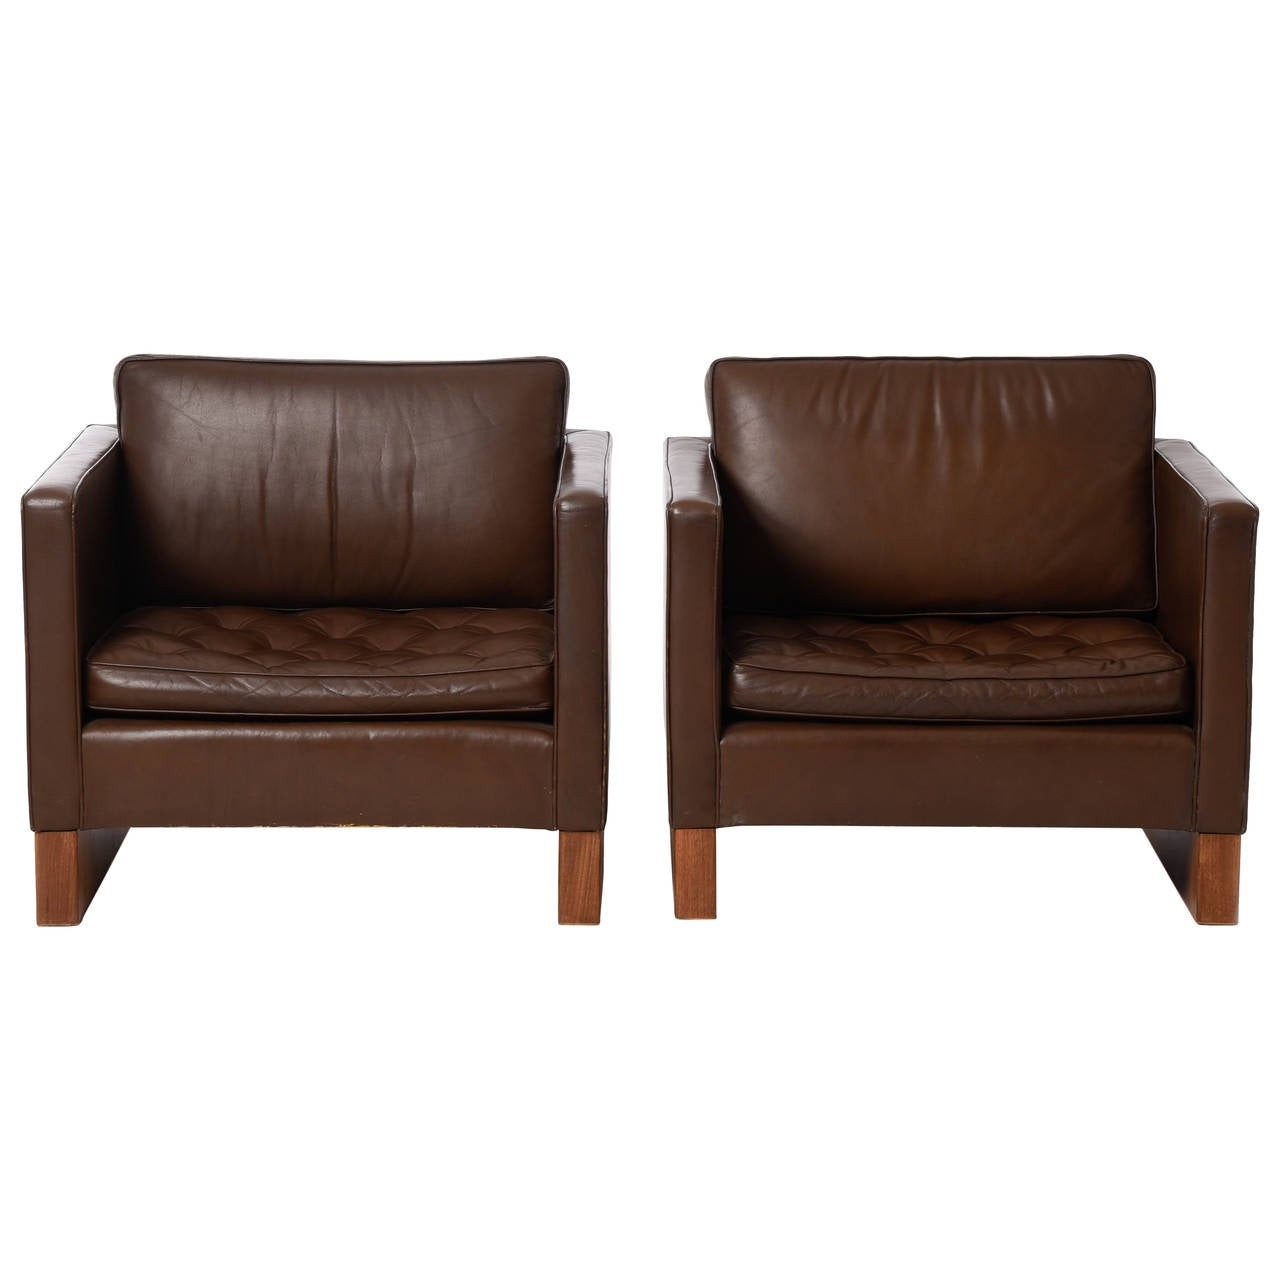 mid century pair of lounge chairs by mies van der rohe for seagram building for sale at 1stdibs. Black Bedroom Furniture Sets. Home Design Ideas